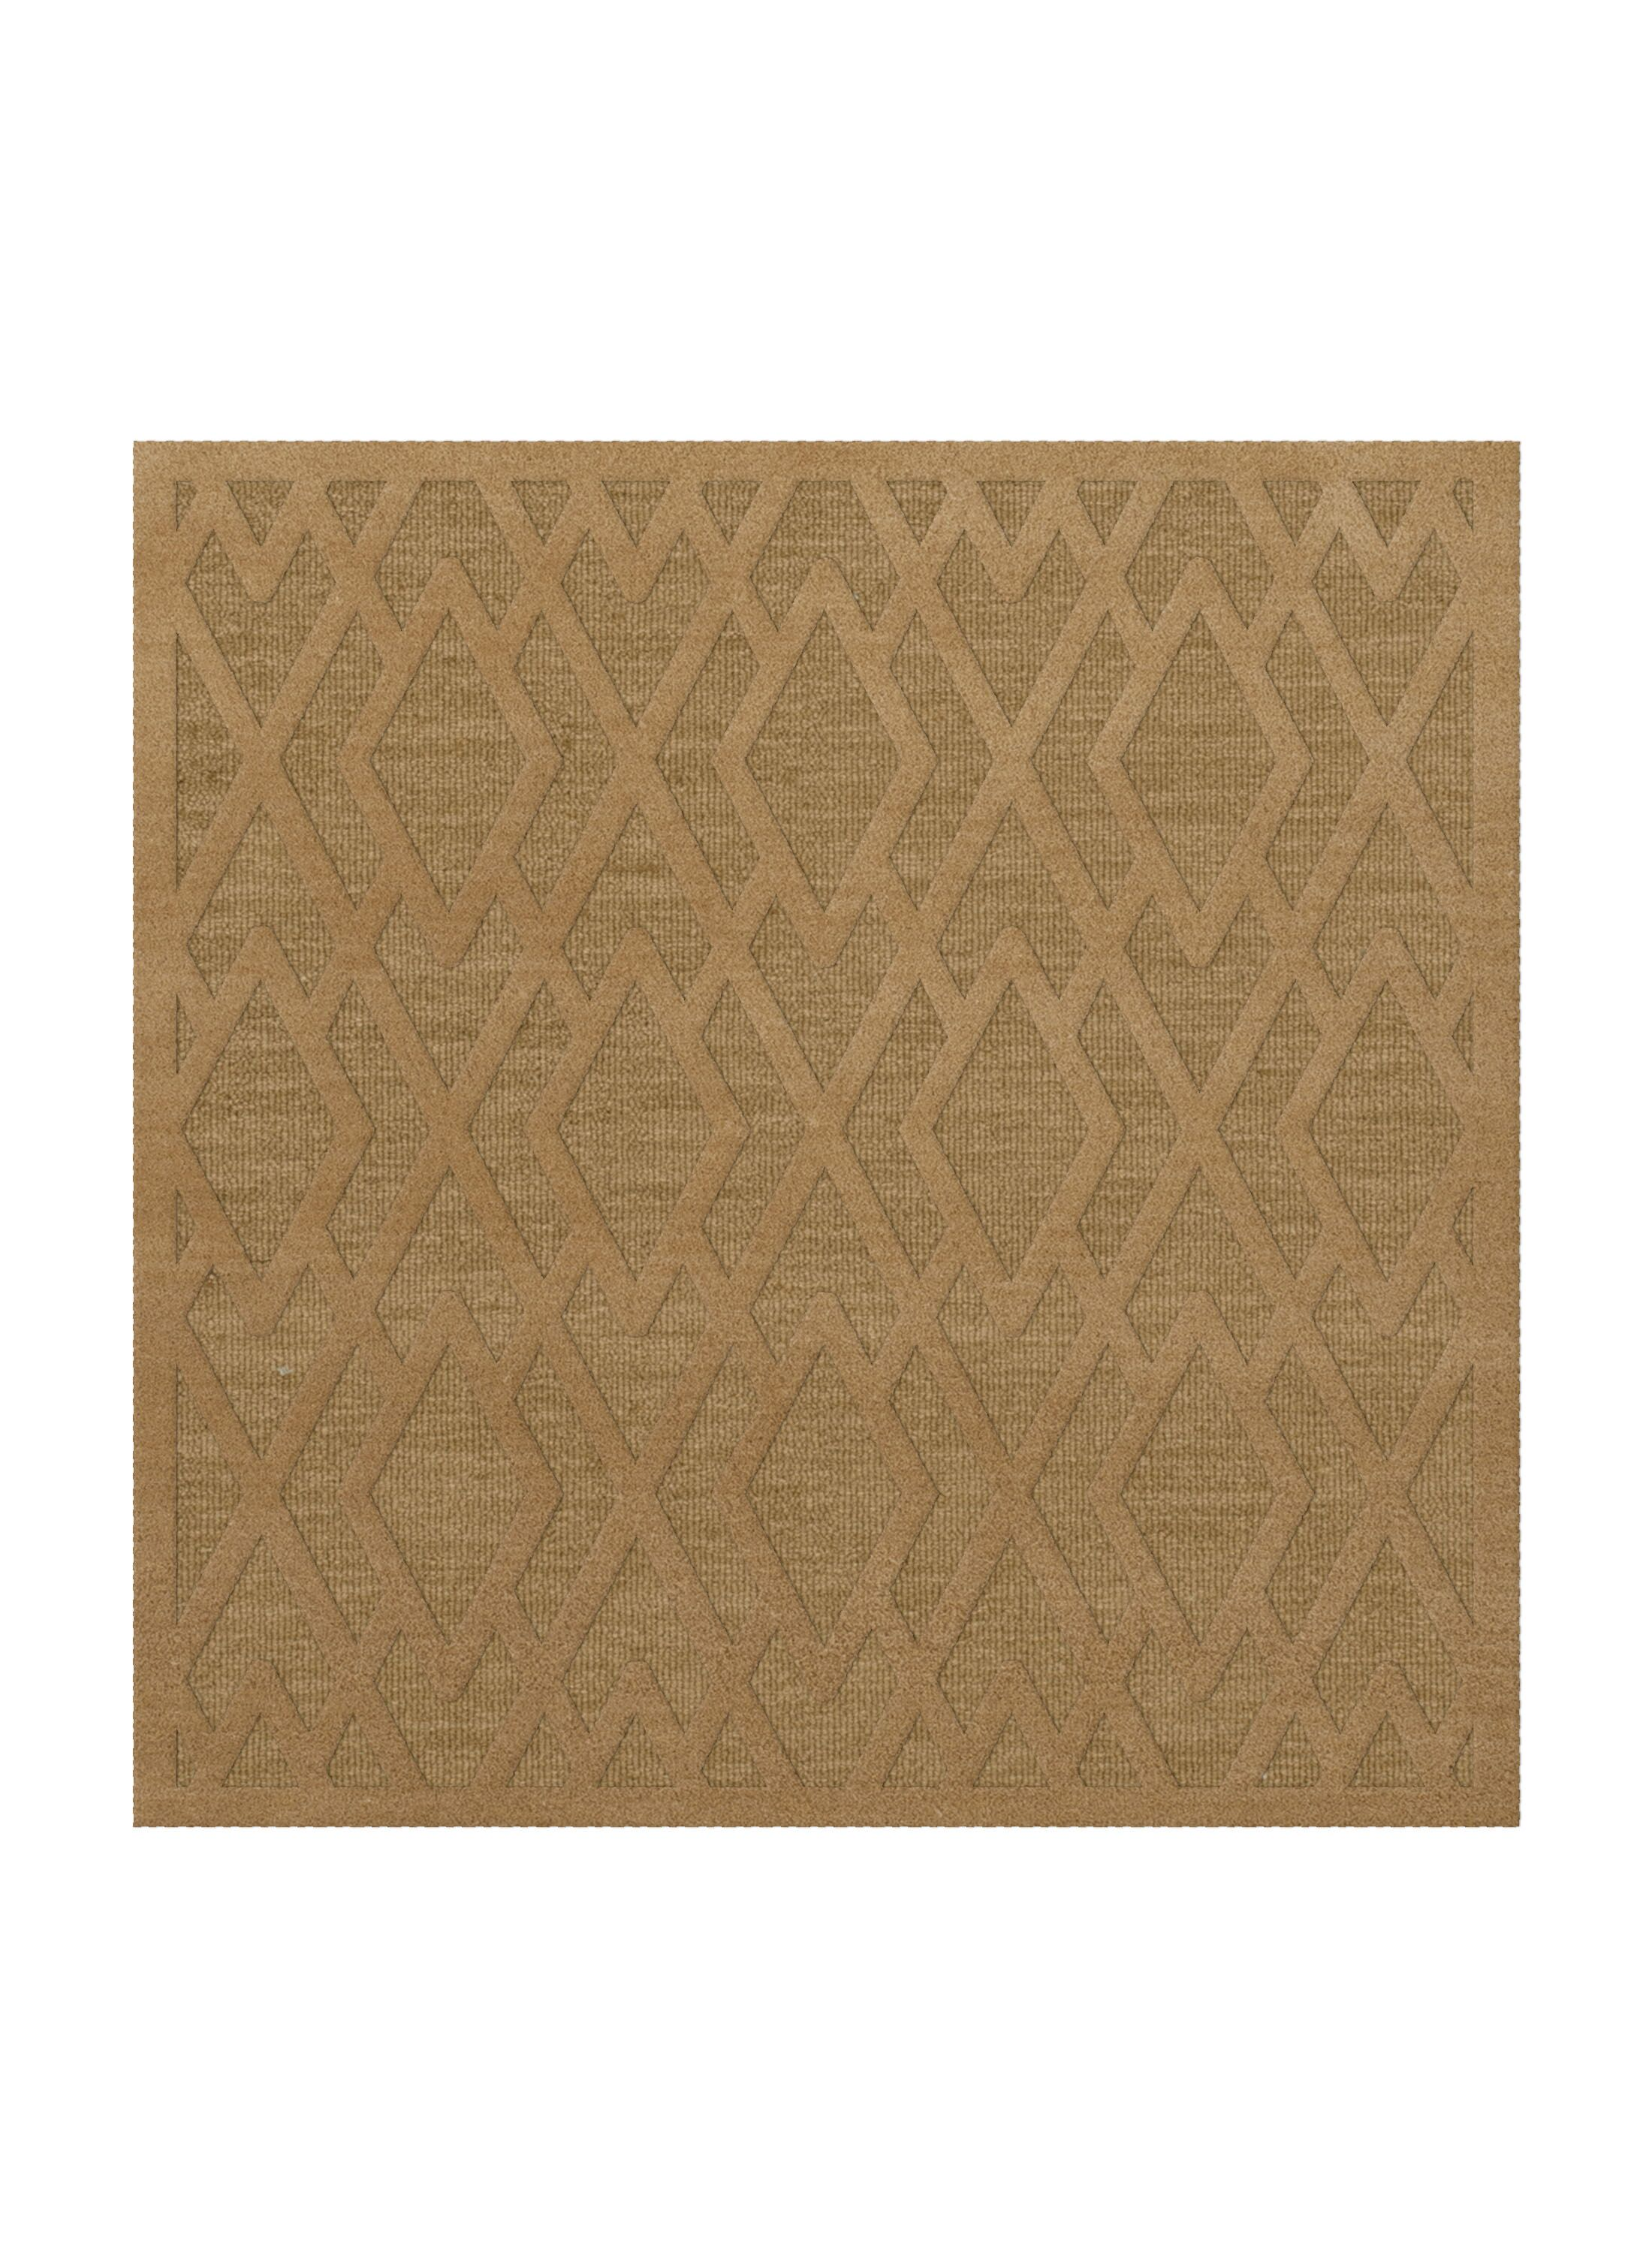 Dover Tufted Wool Wheat Area Rug Rug Size: Square 4'